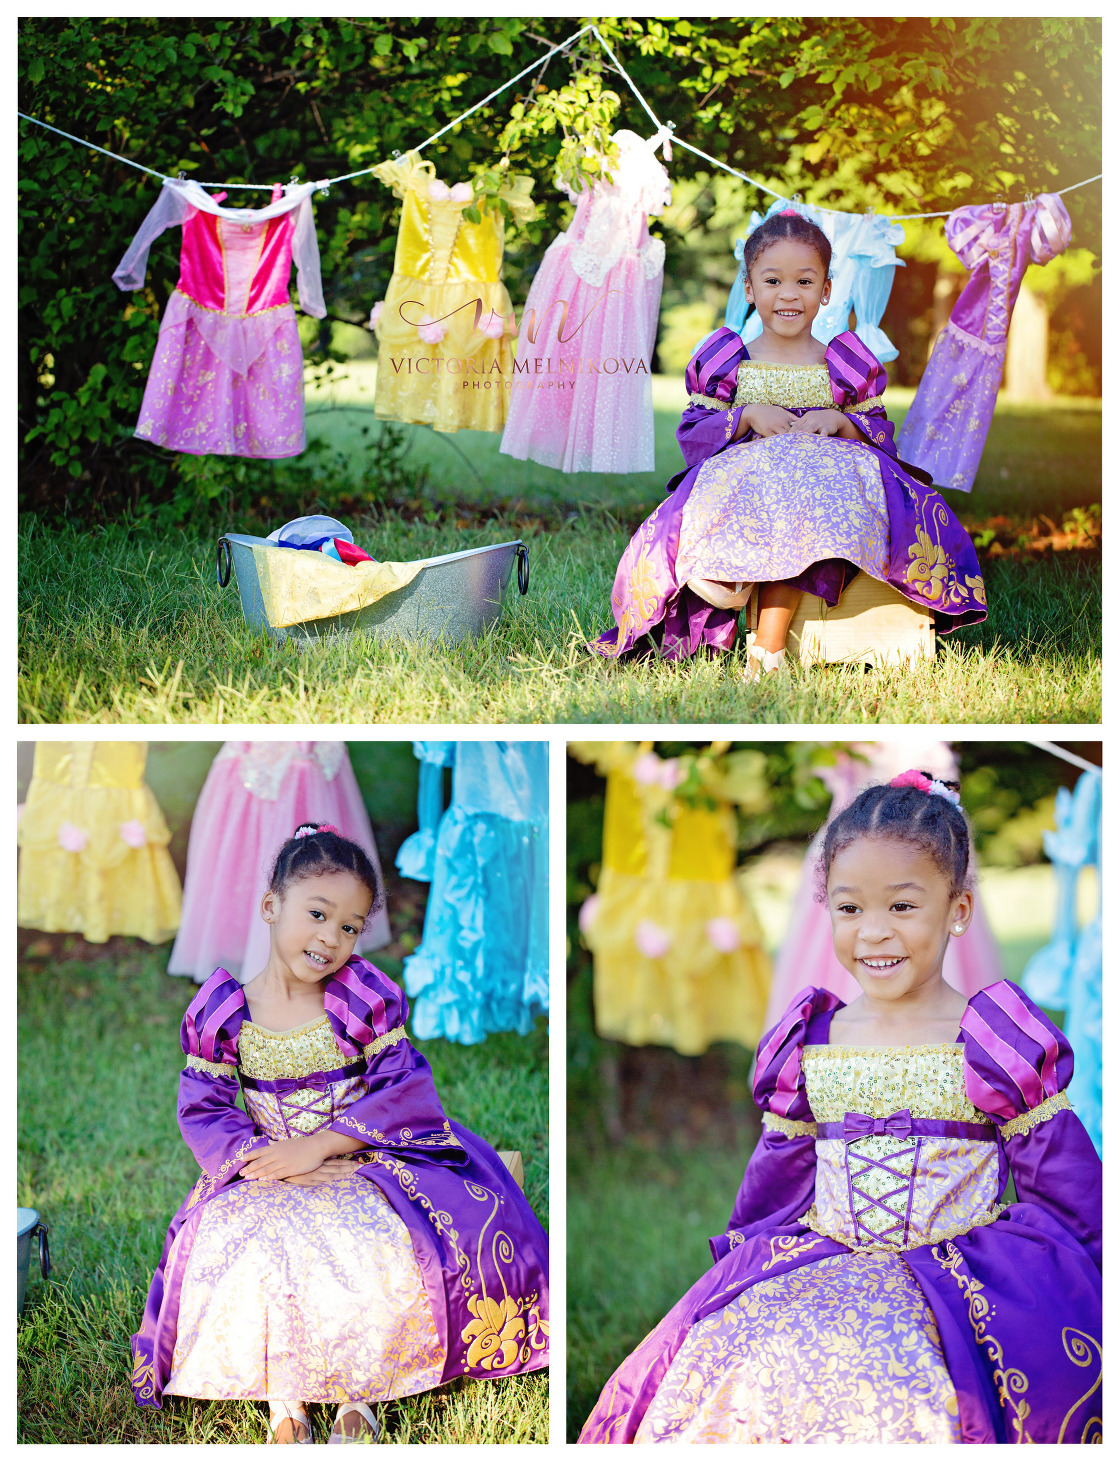 Princess session best ideas for kids photos